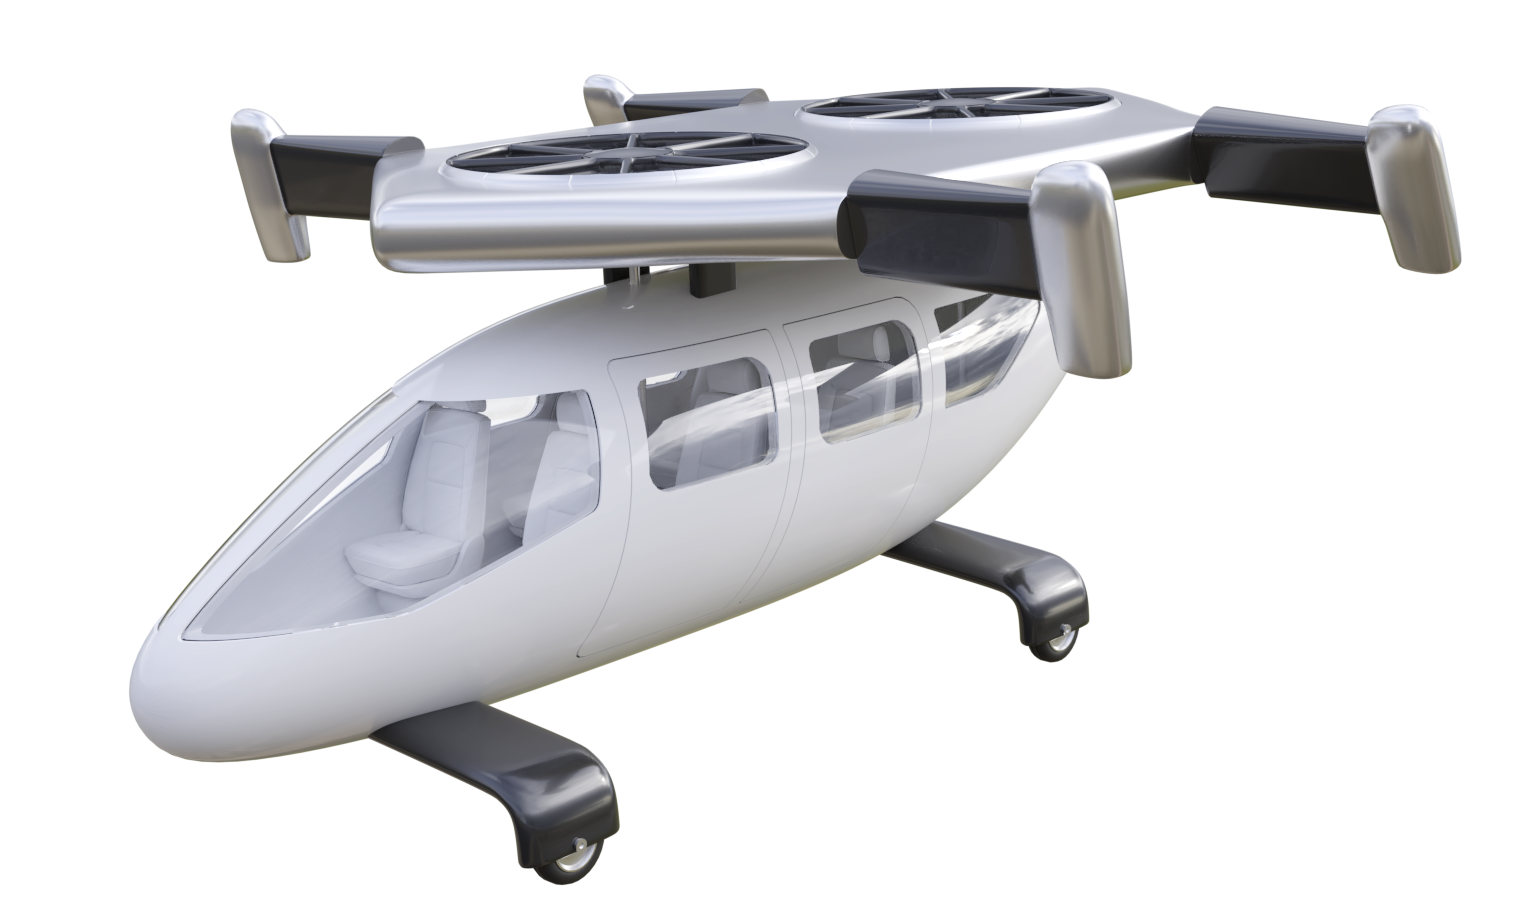 Previous version of the Jetcopter